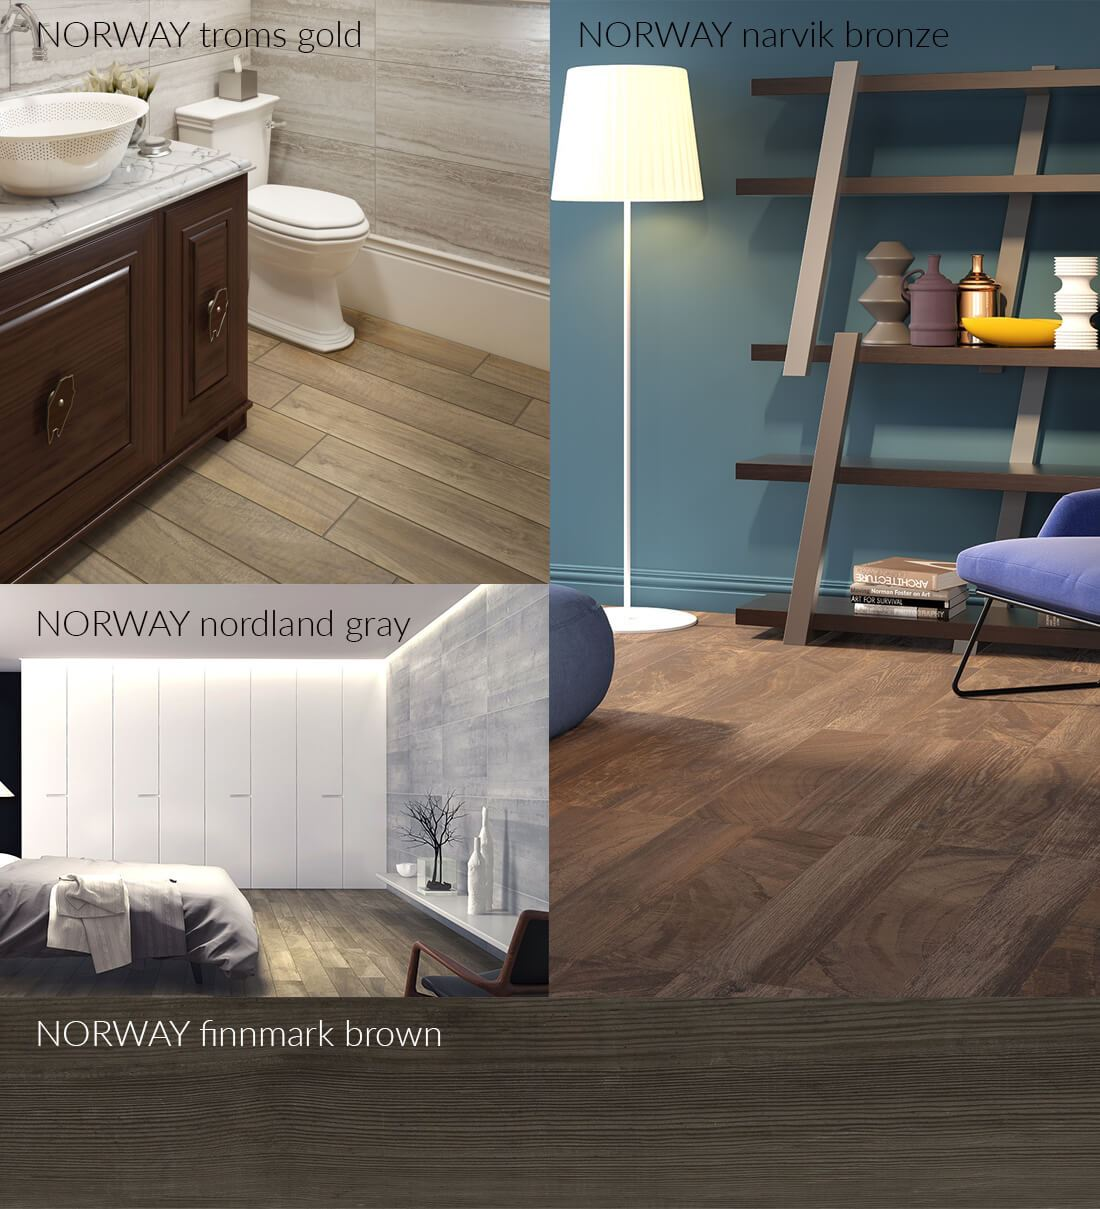 norway-wood-look-tile-room-scenes